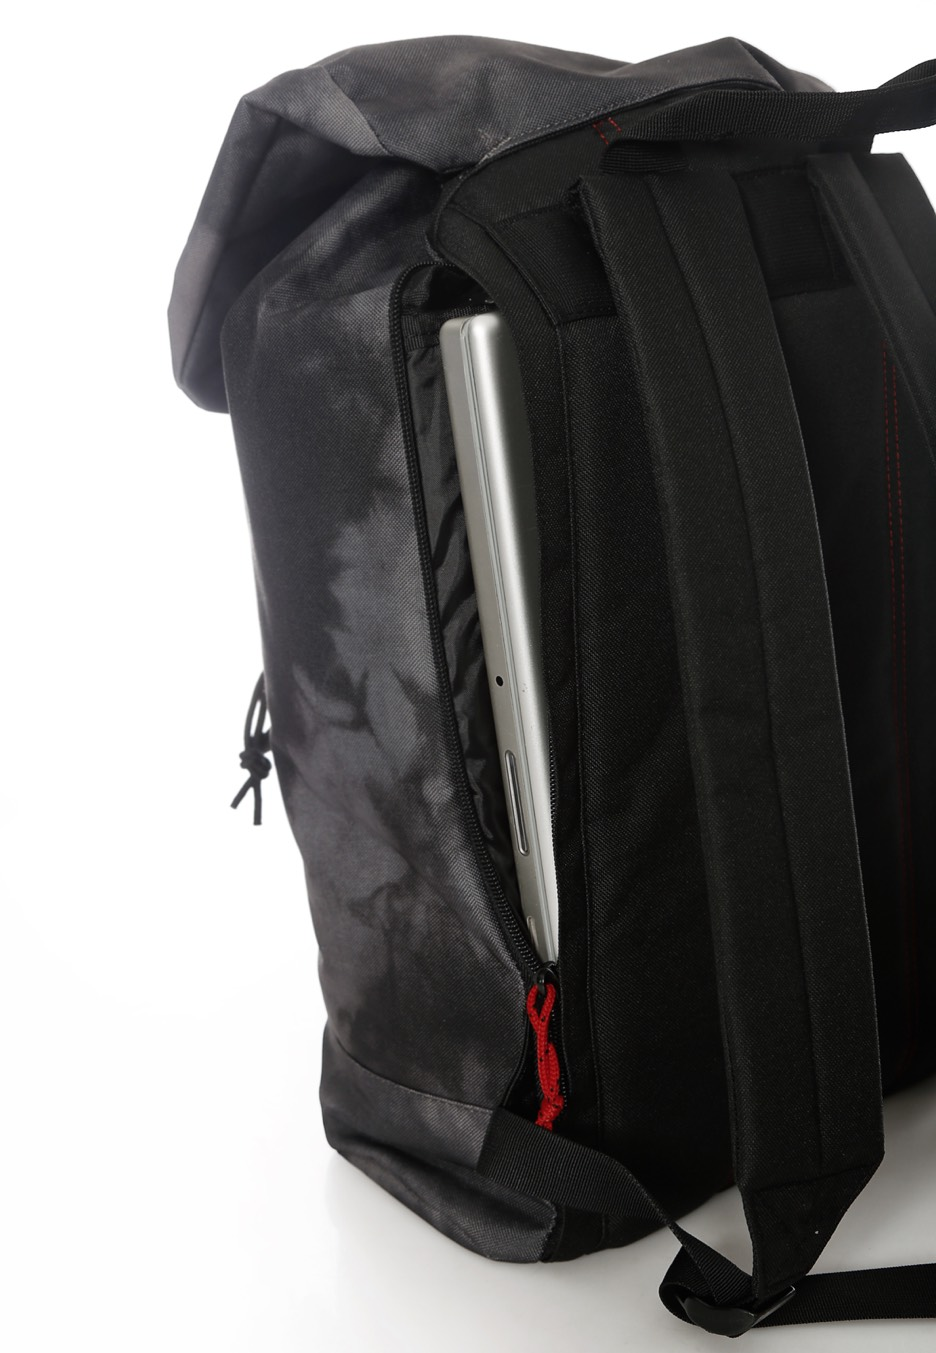 ca3a9753bfd4 Billabong - Track - Backpack - Streetwear Shop - Impericon.com US